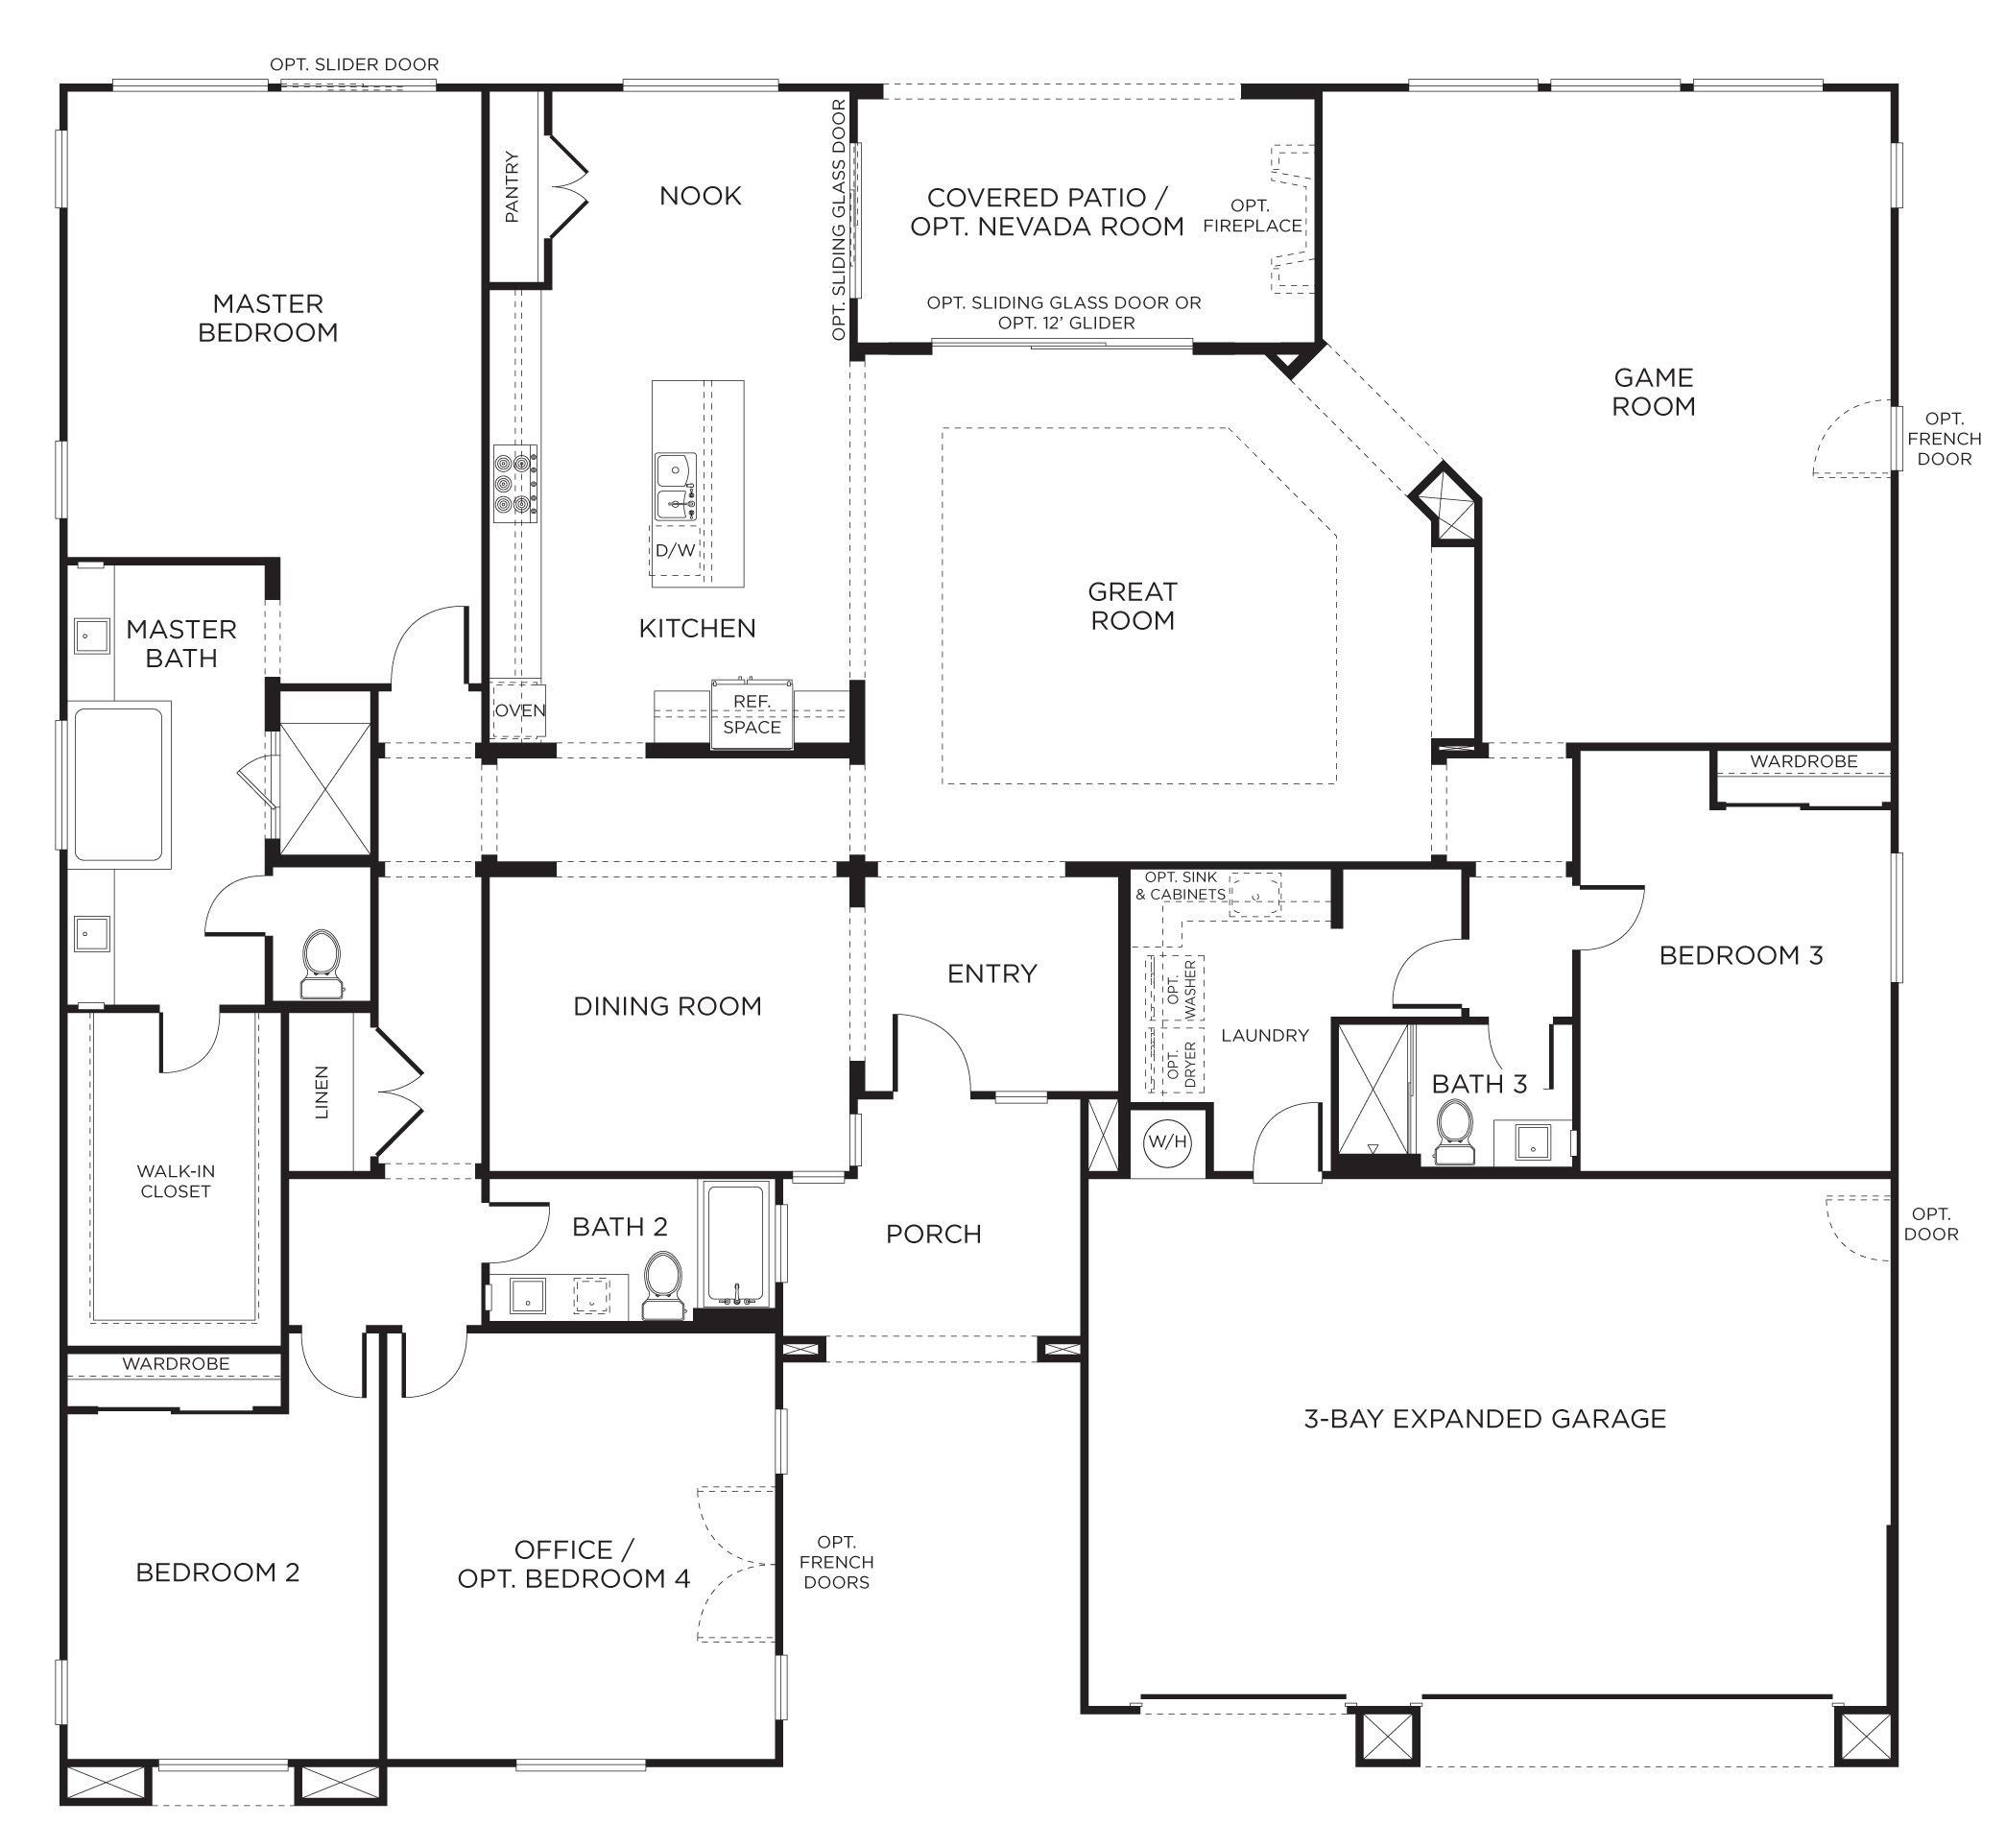 Floorplan 2 3 4 bedrooms 3 bathrooms 3400 square feet for One story home plans